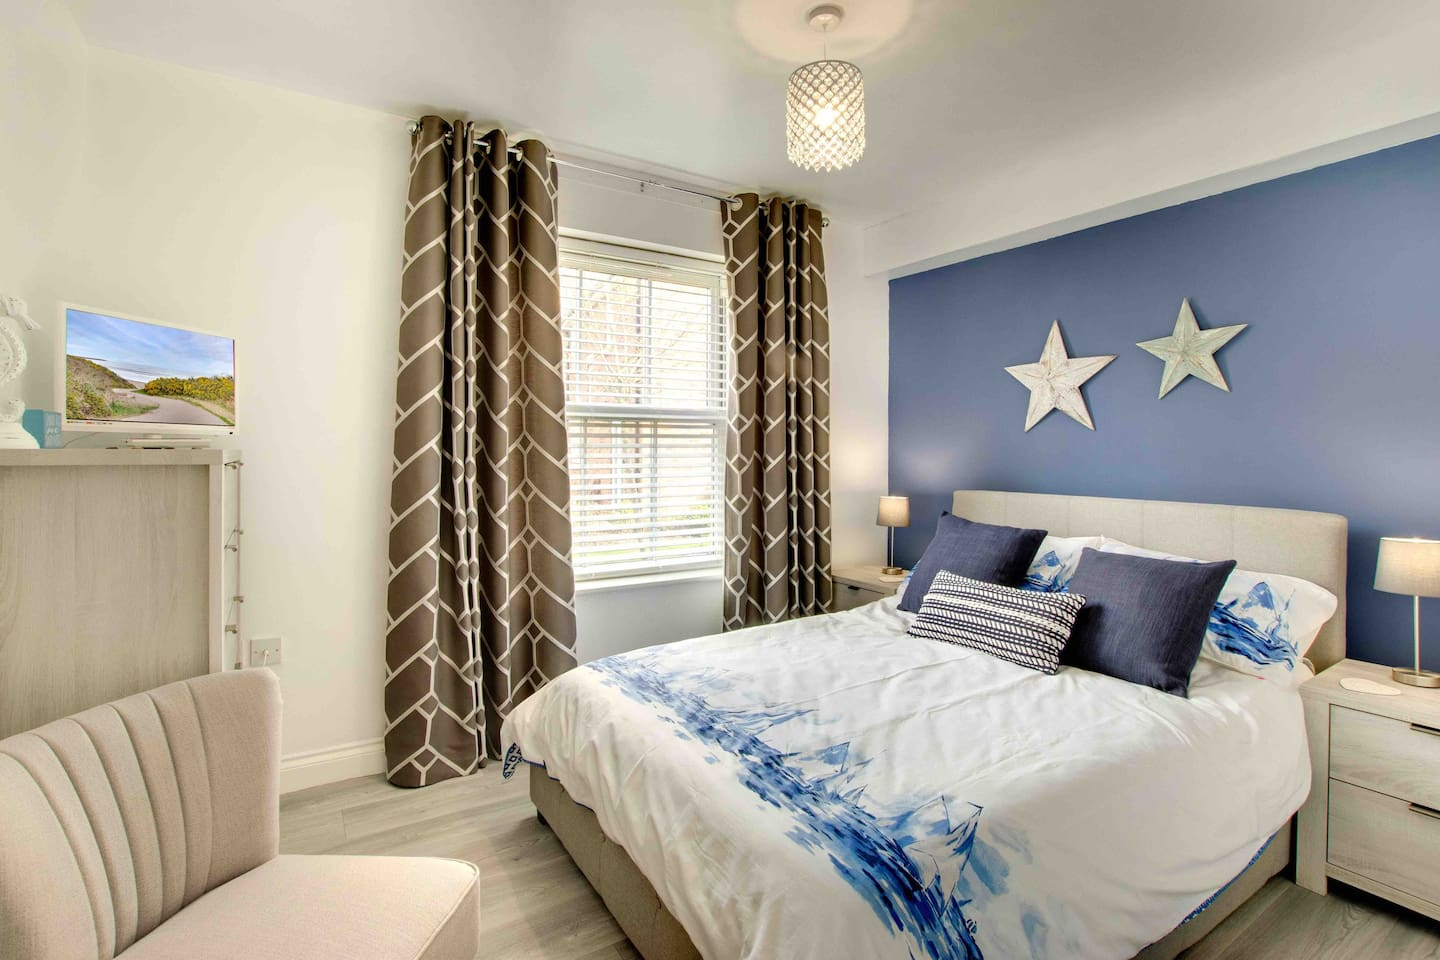 Stylish and comfortable double bedroom at The Seahorse apartment